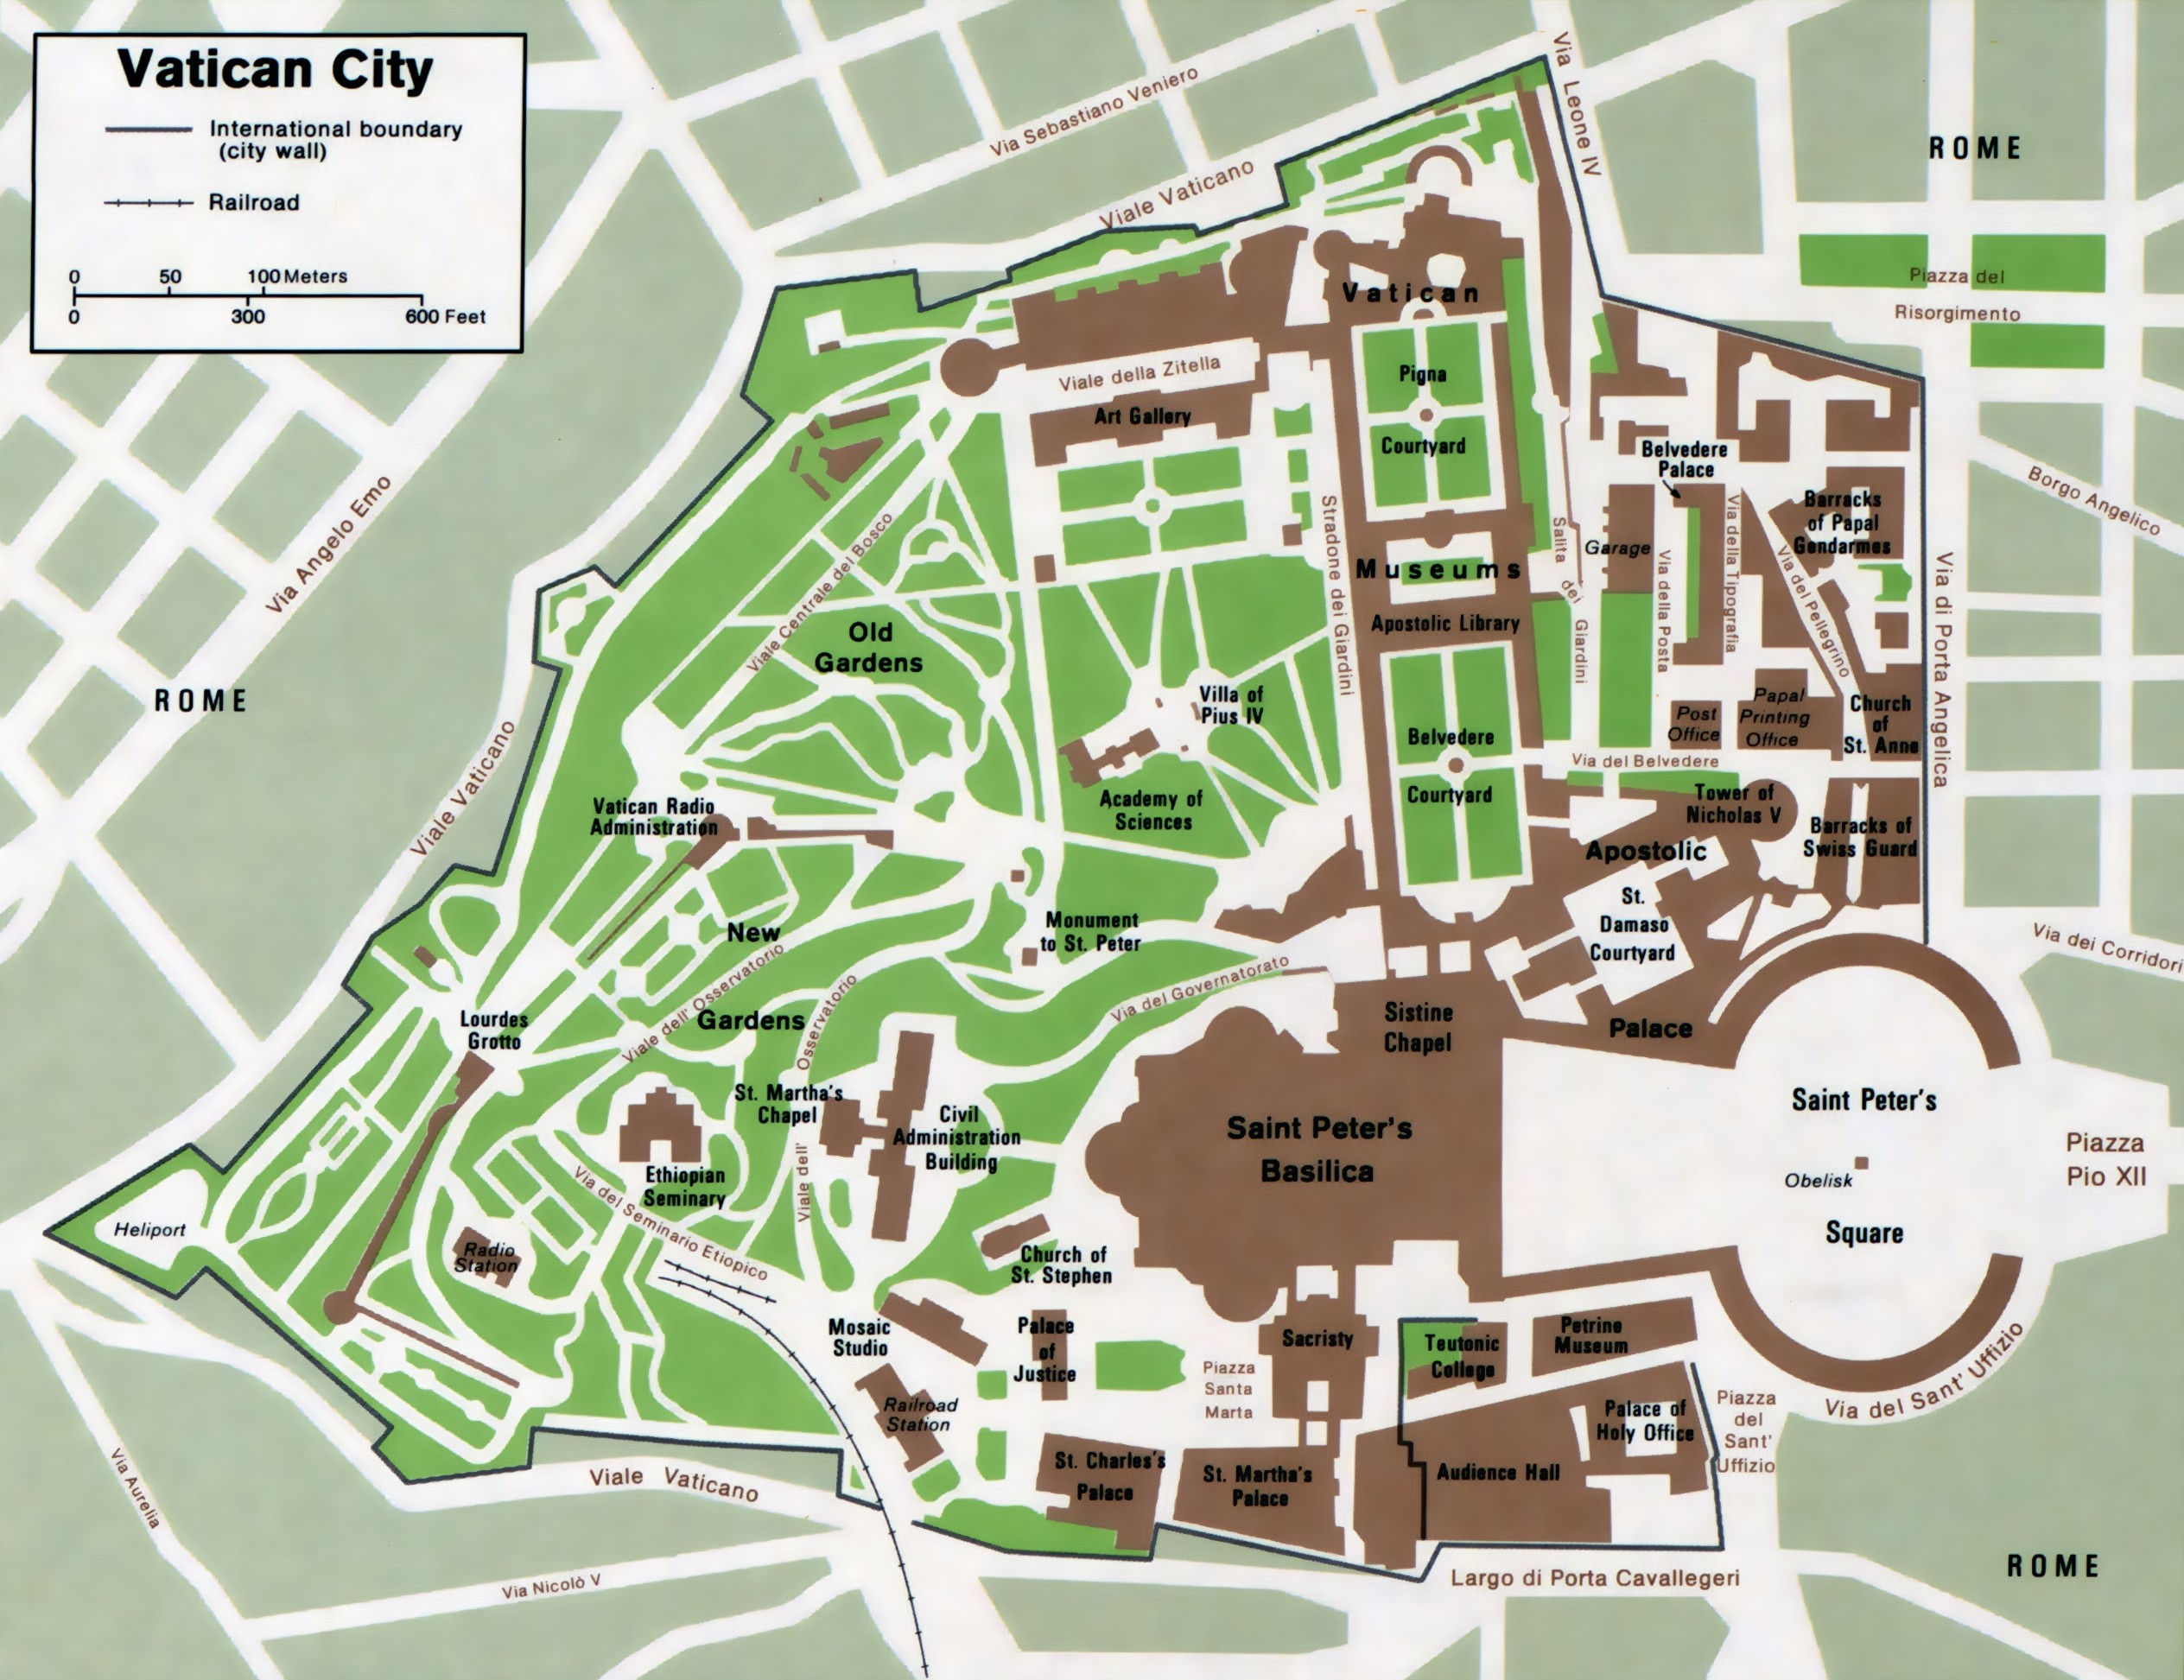 Outline of Vatican City - Wikipedia, the free encyclopedia